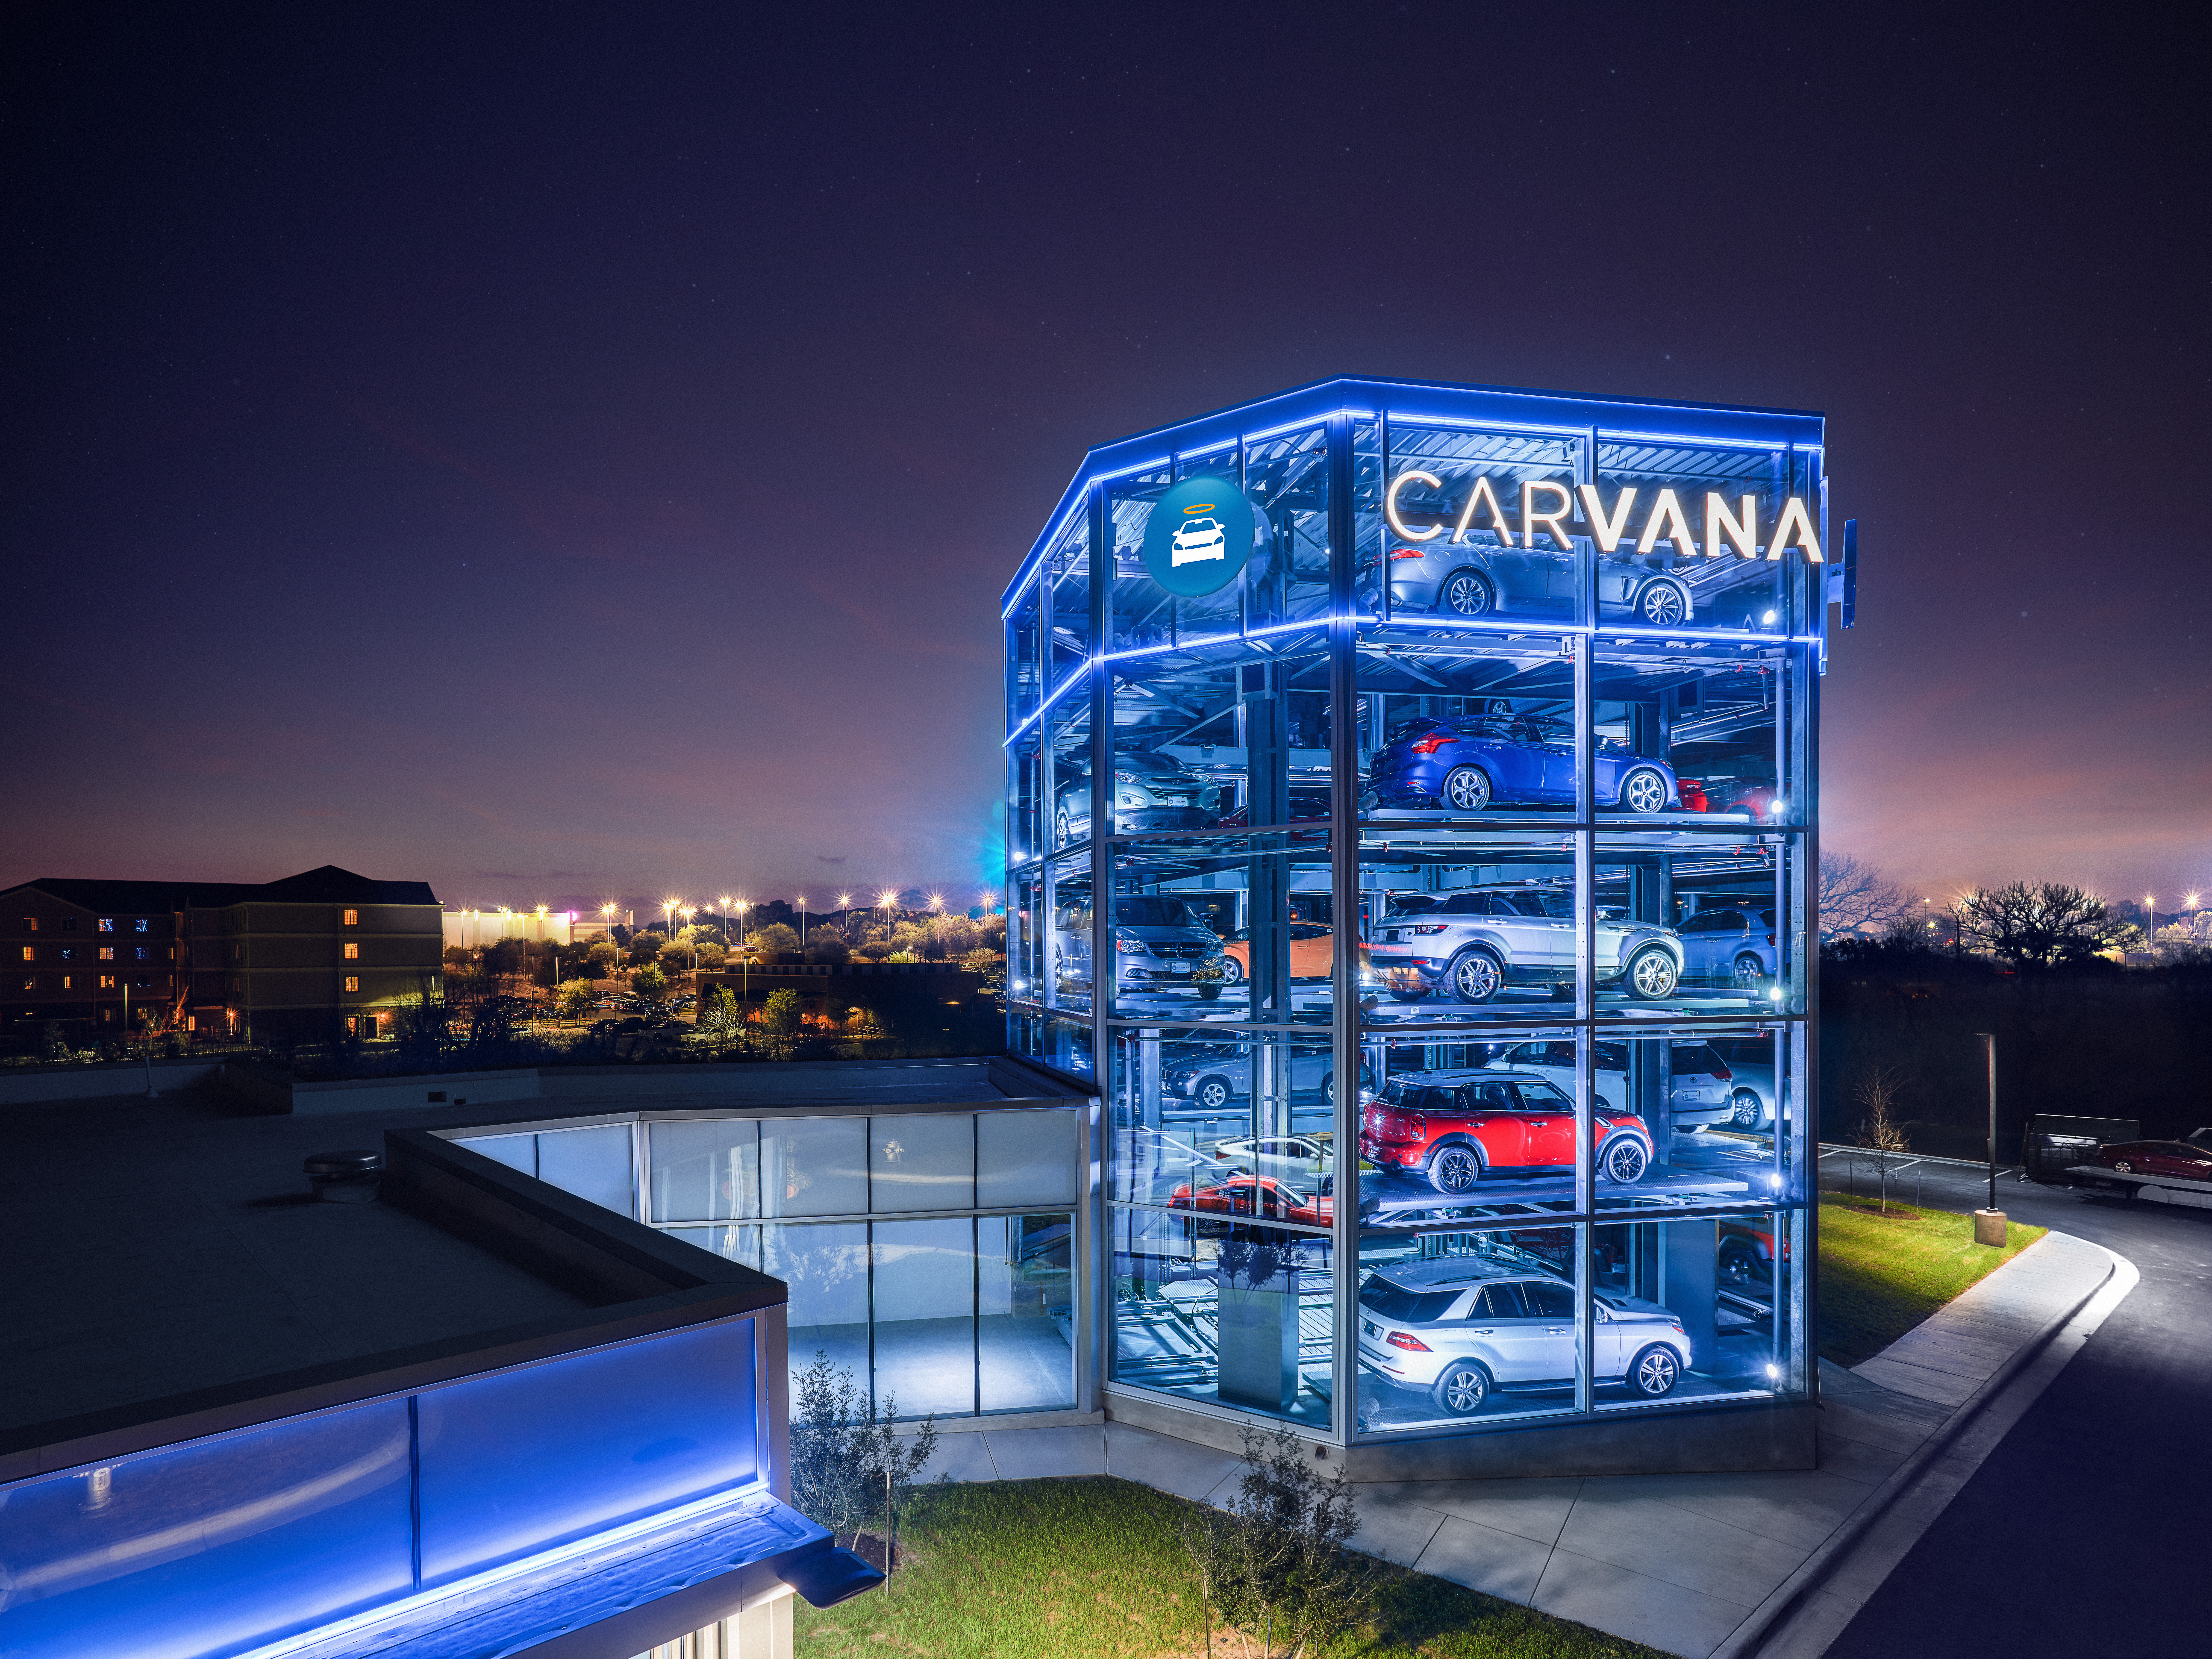 Carvana opens another car vending machine in Austin, Texas on Tuesday, February 7, 2017.